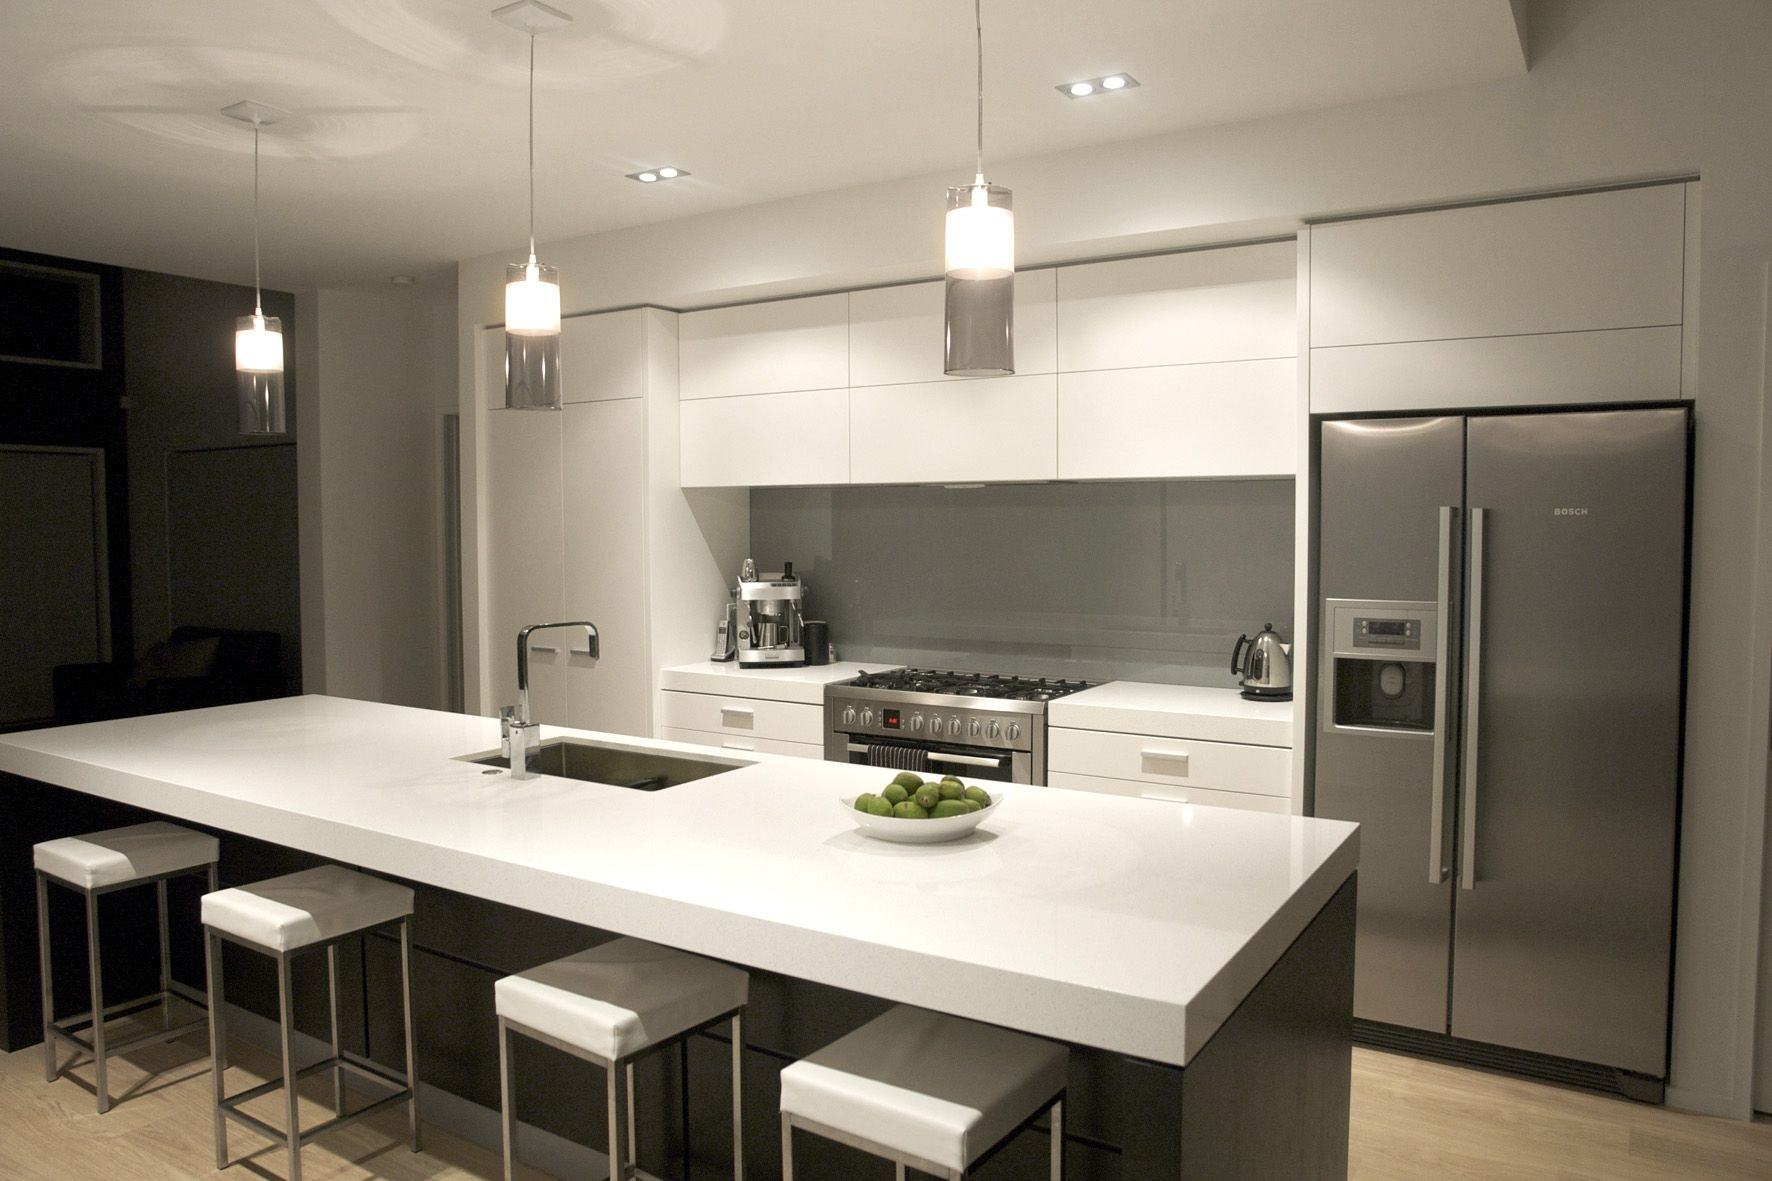 Modern kitchen designs nz google search cuisine for Google cuisine moderne